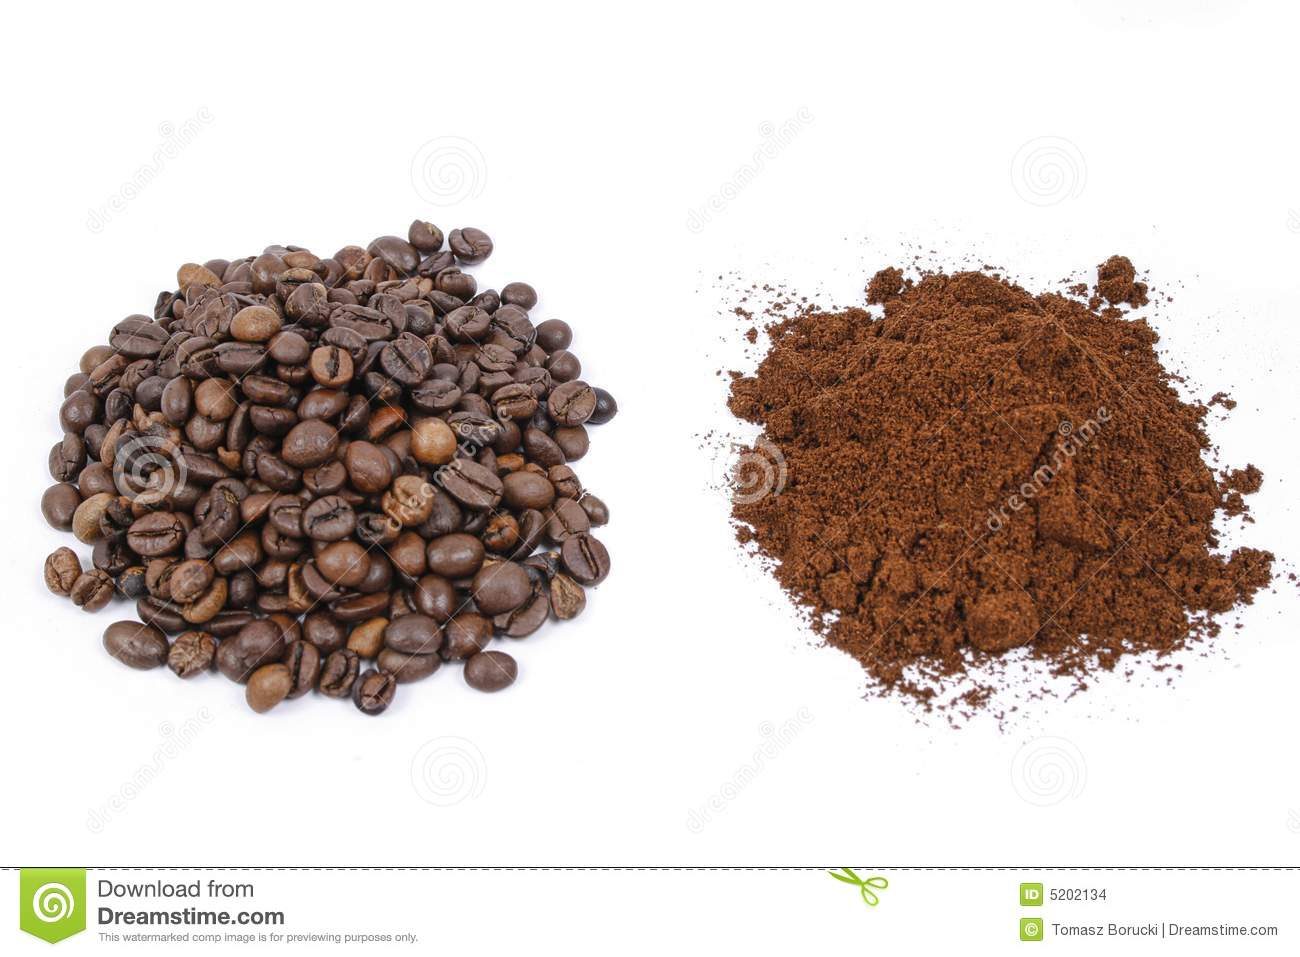 how to make coffee from ground beans